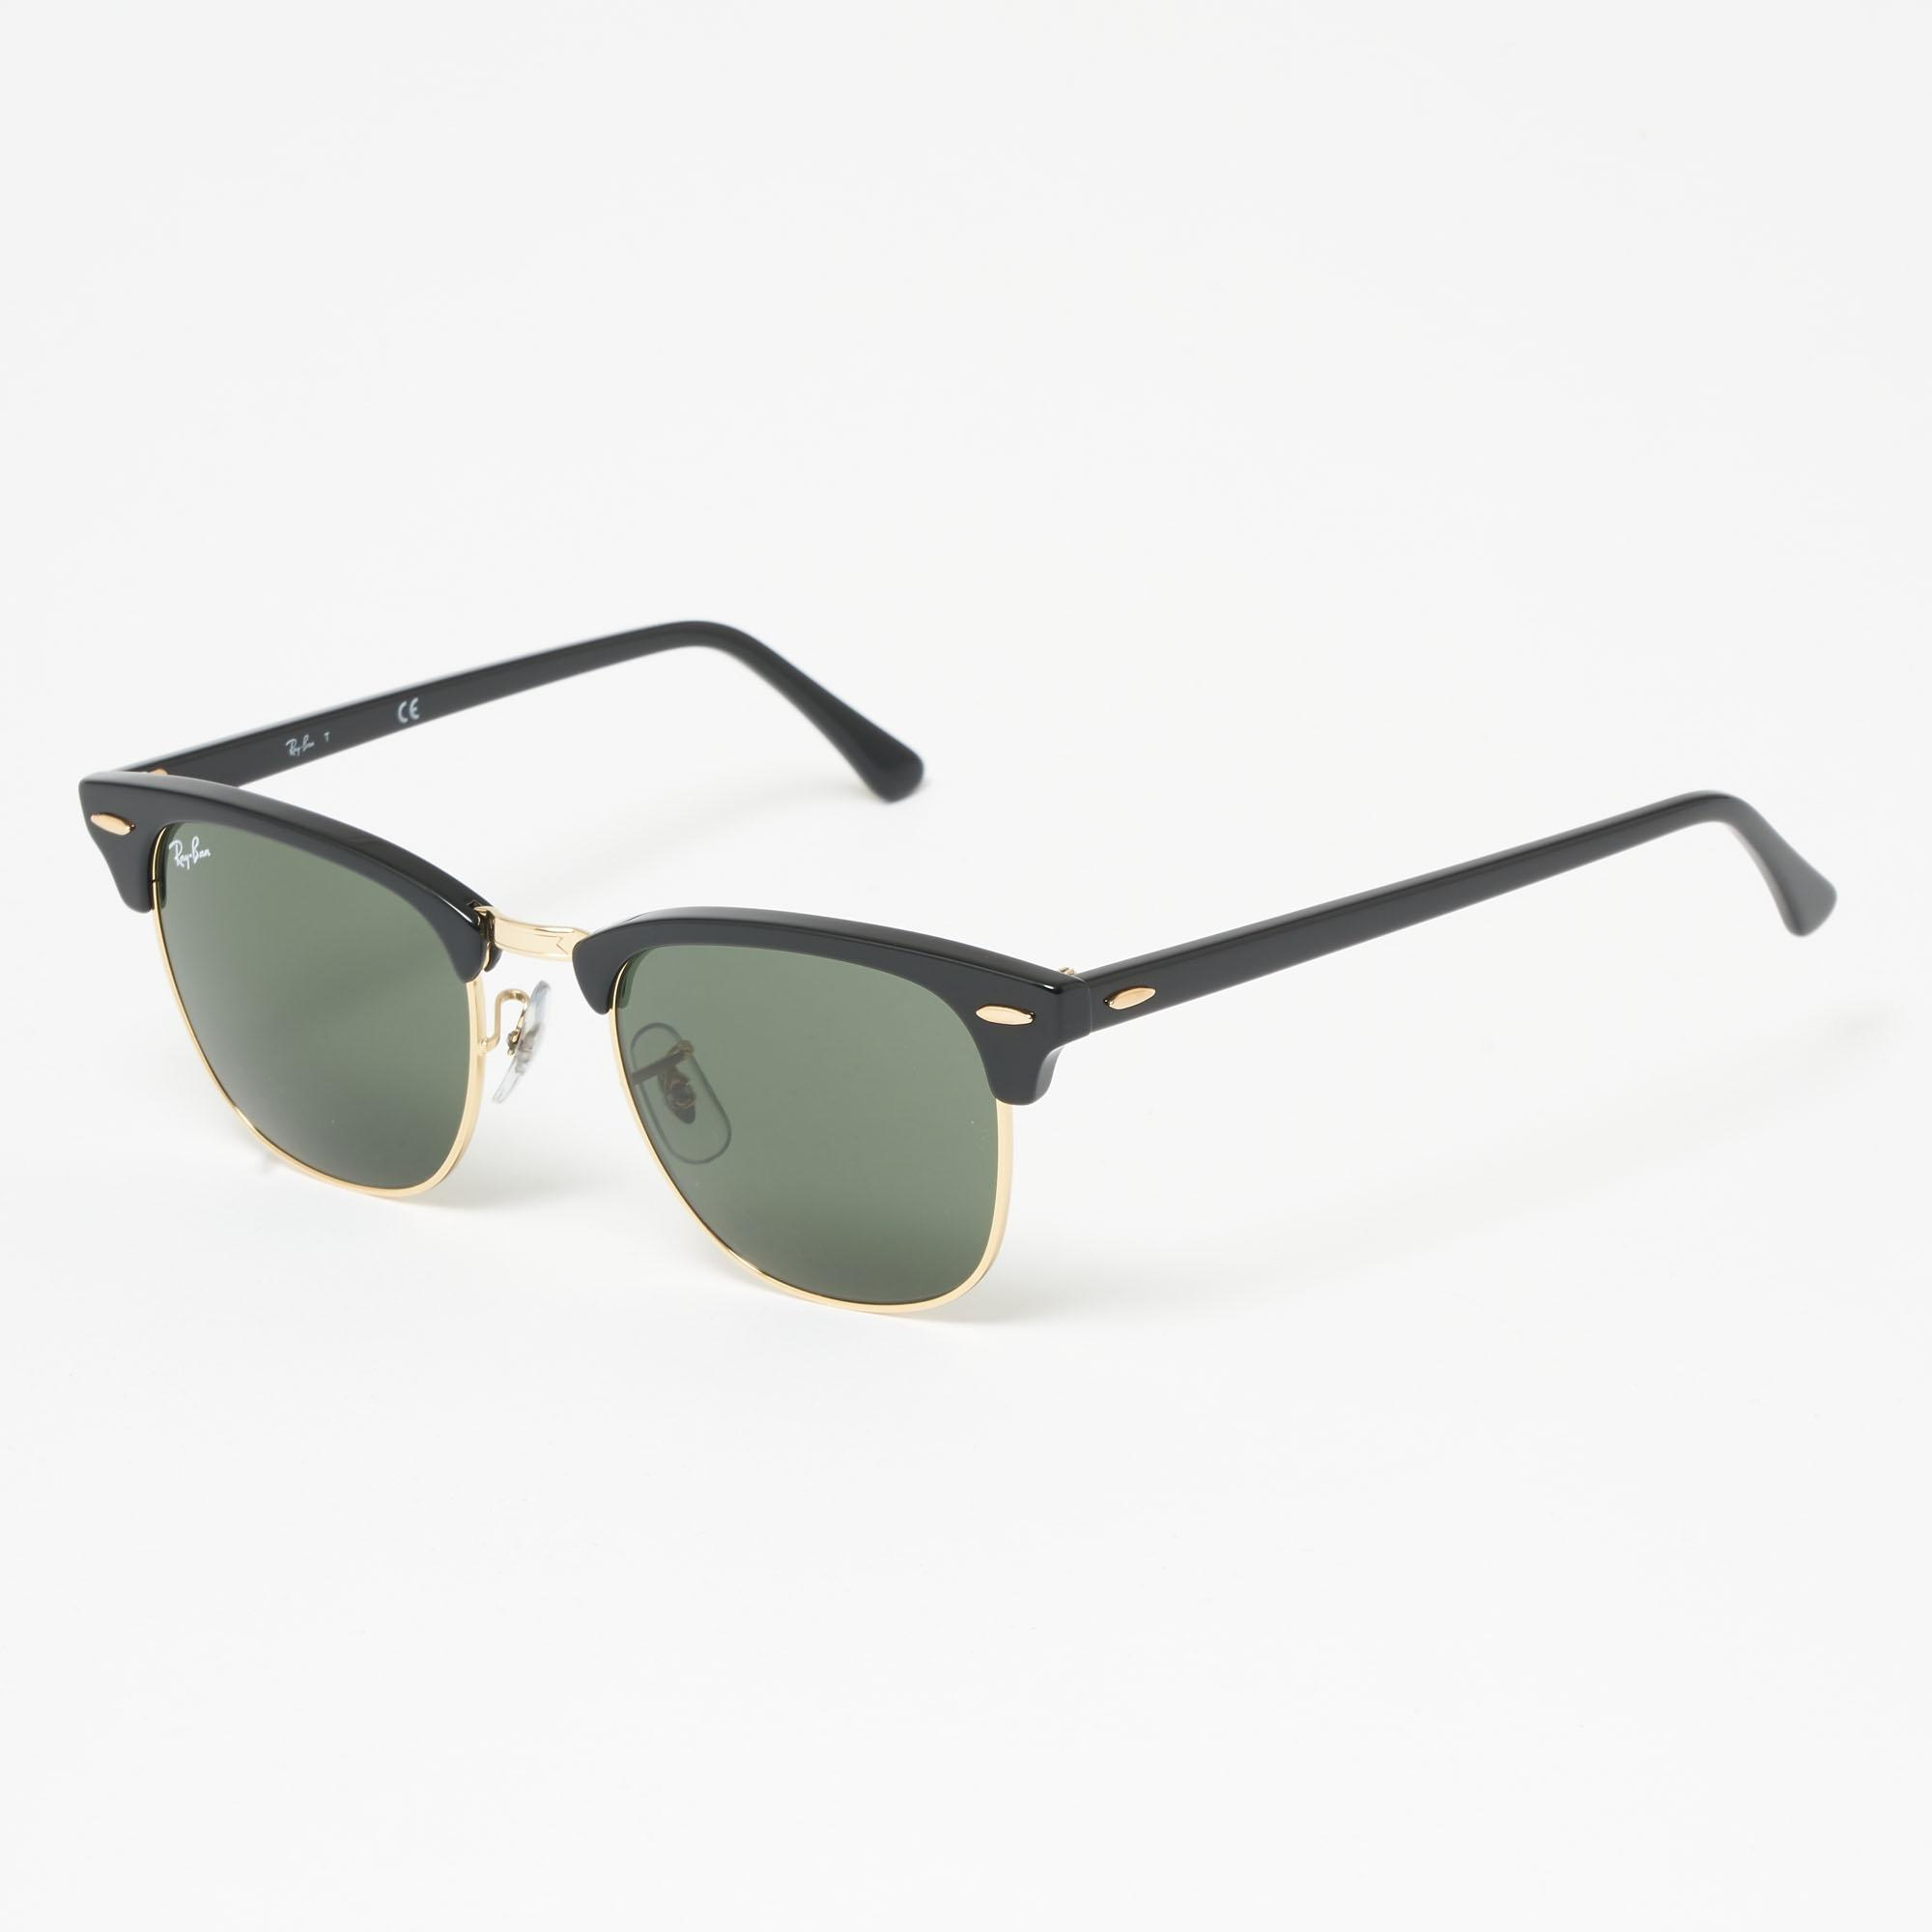 744dde4de7 Ray-Ban. Men s Black Clubround Classic Sunglasses - Green Classic G-15  Lenses